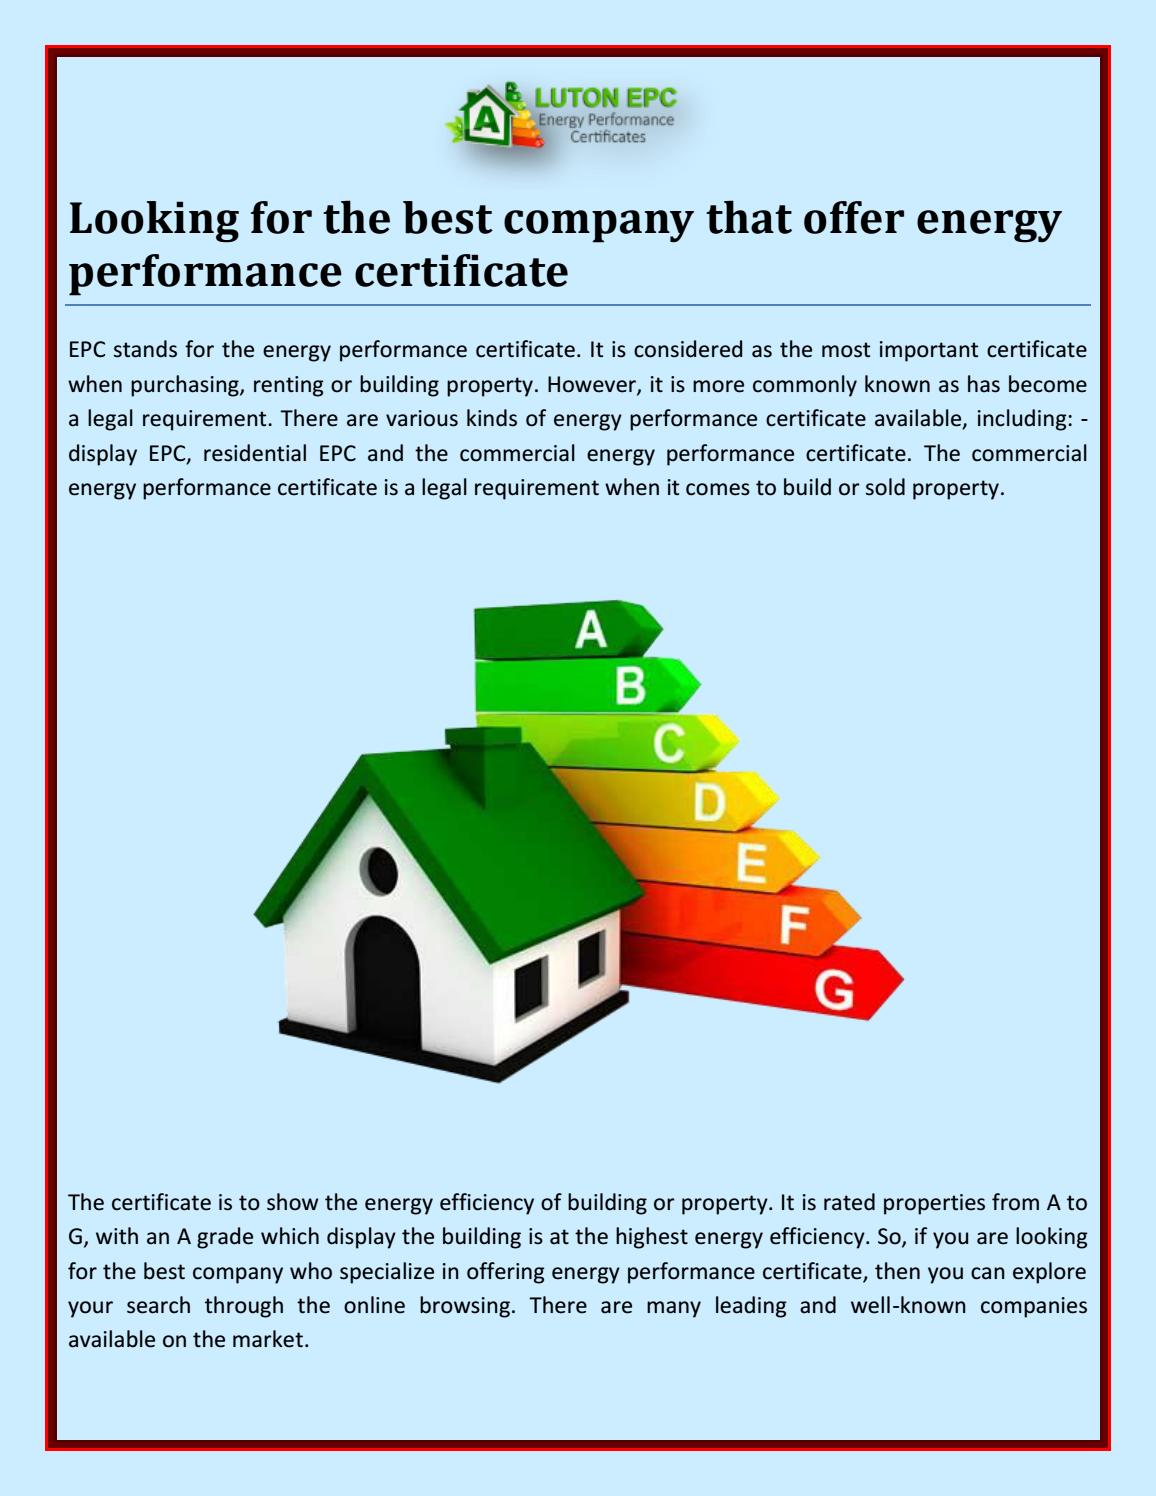 Looking For The Best Company That Offer Energy Performance